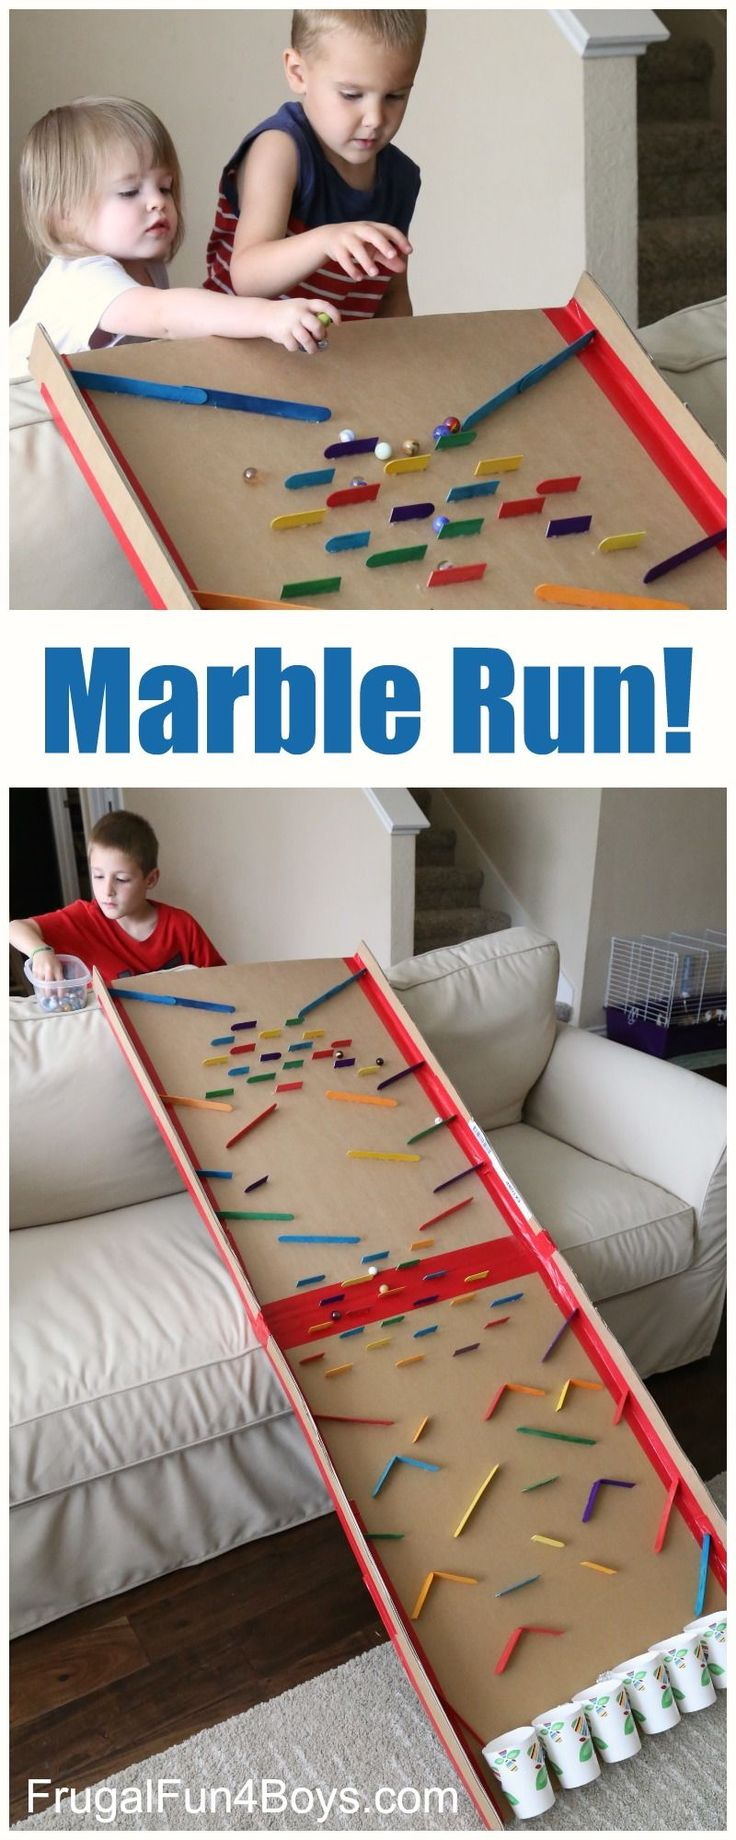 Turn a Cardboard Box into an Epic Marble Run kids diy kids activities home activities